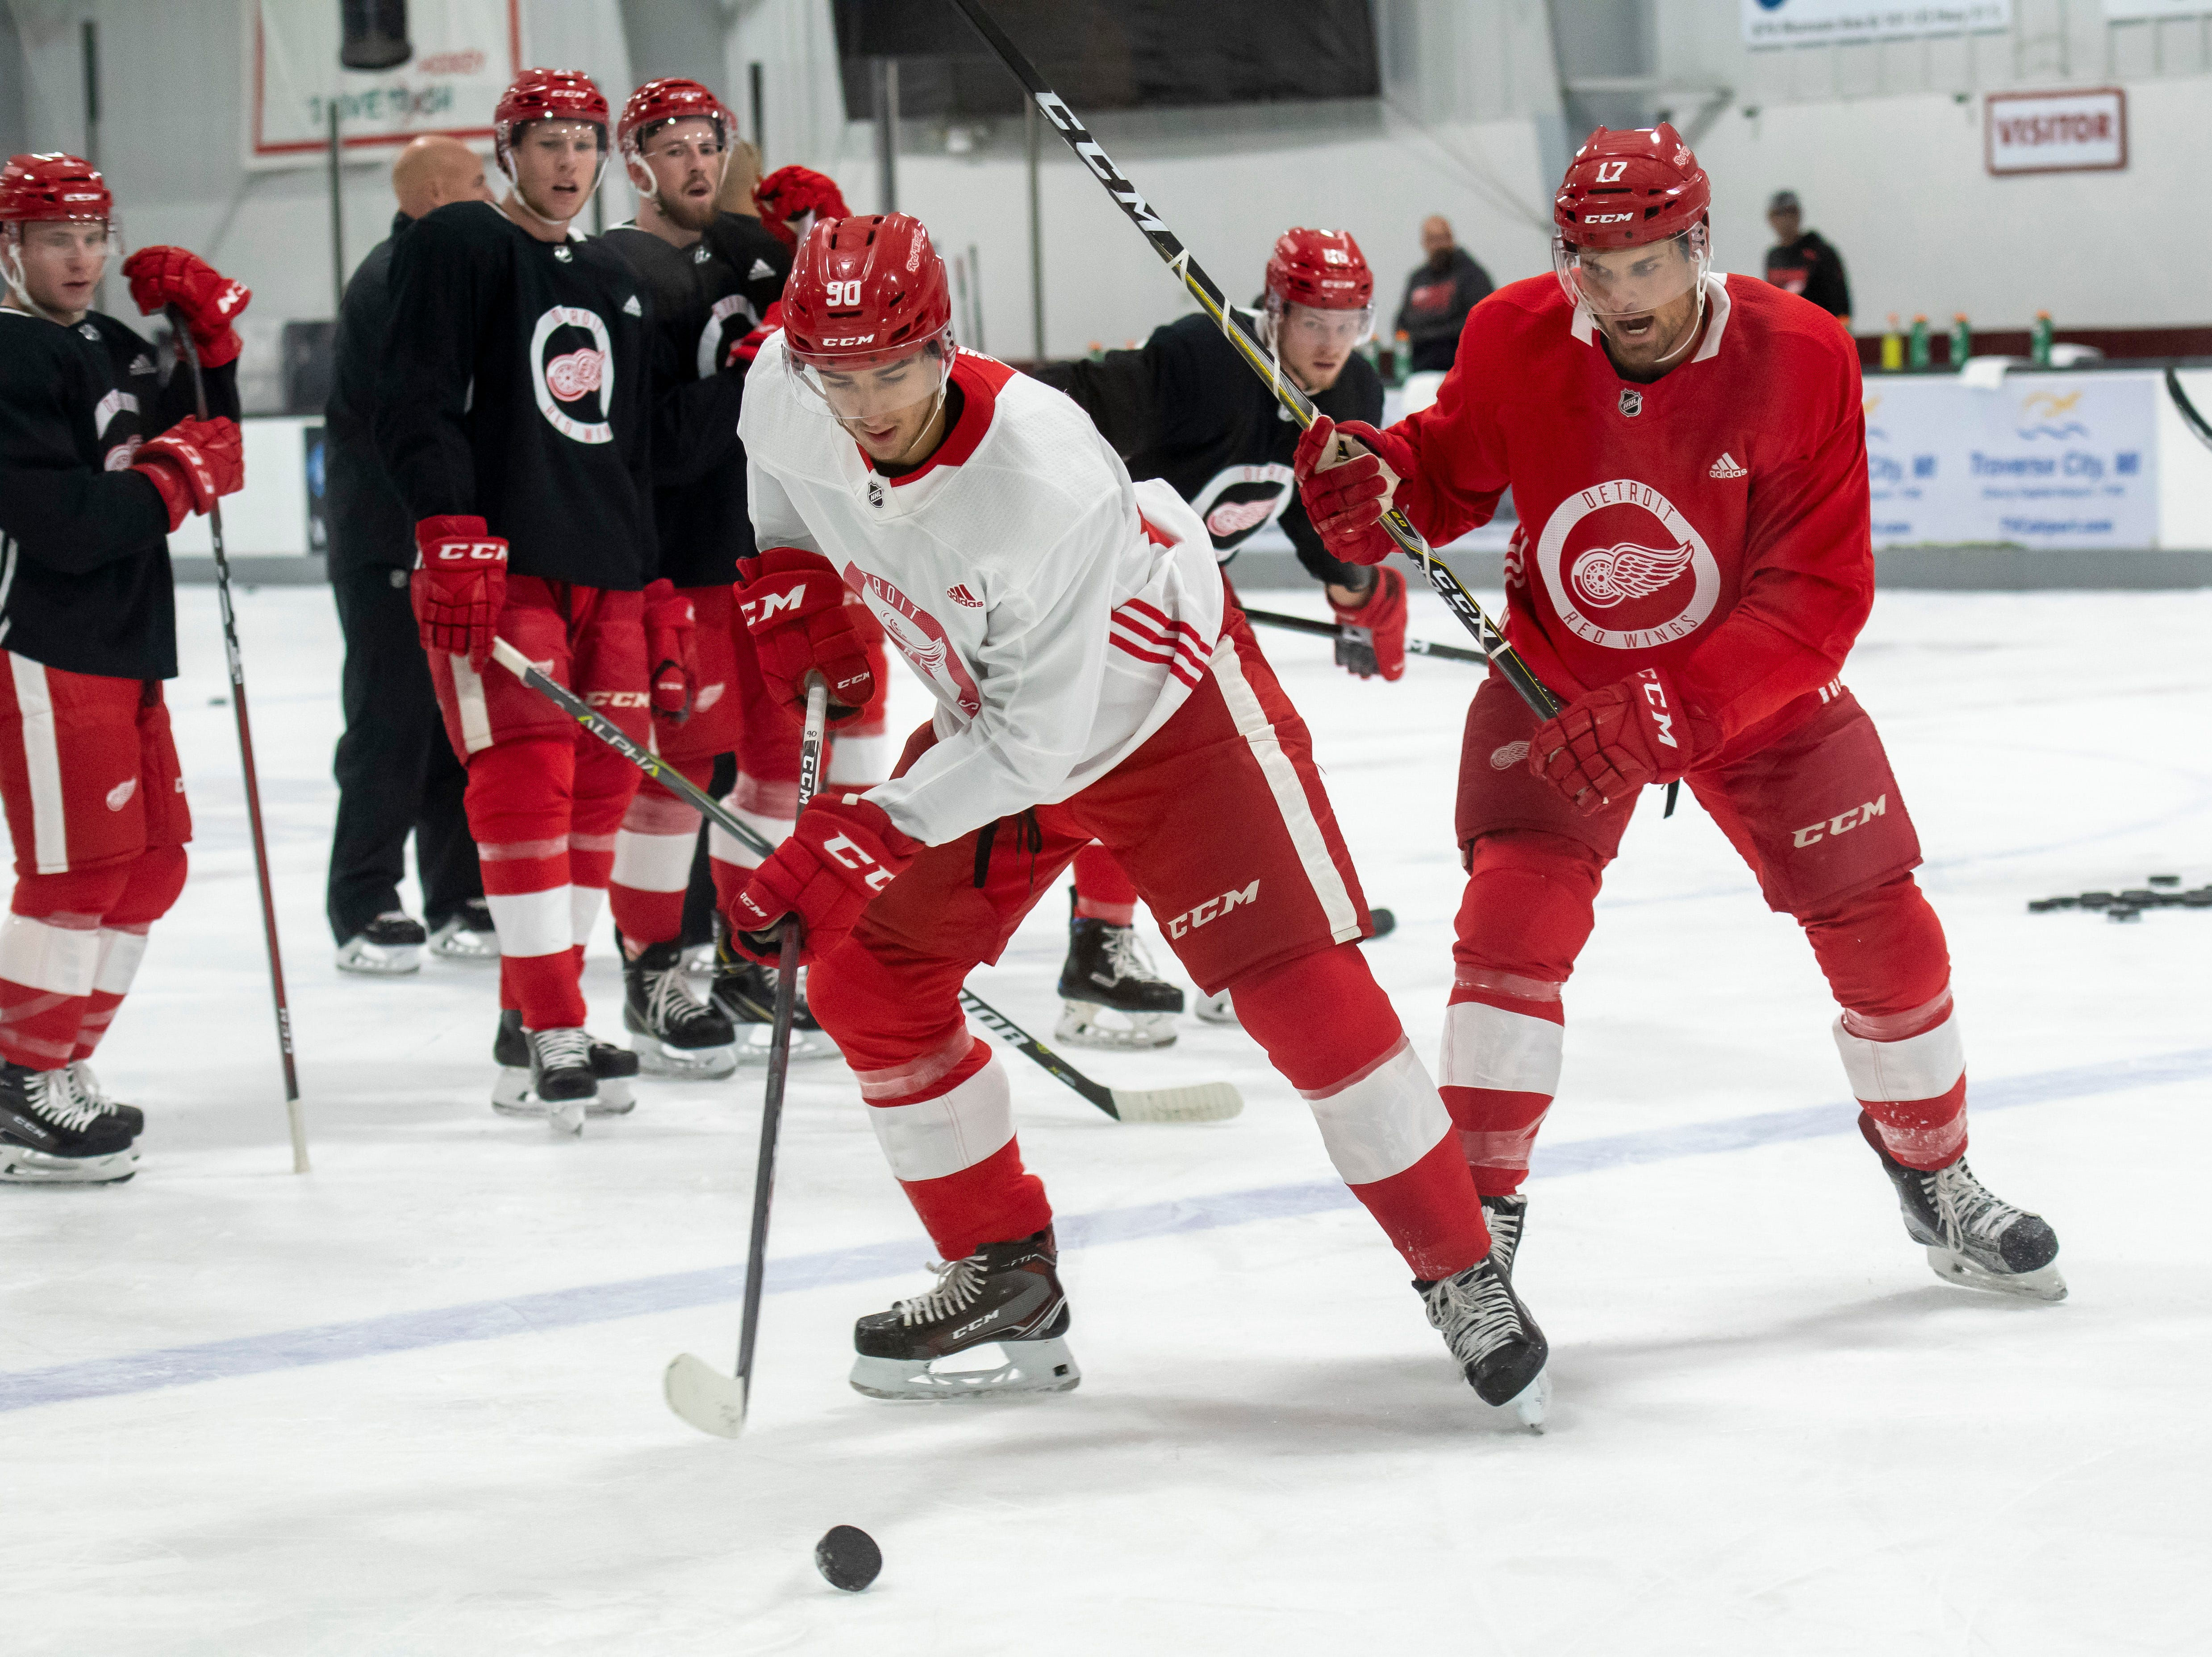 Detroit forward Joe Veleno, left, and forward Colin Campbell battle for the puck during practice.